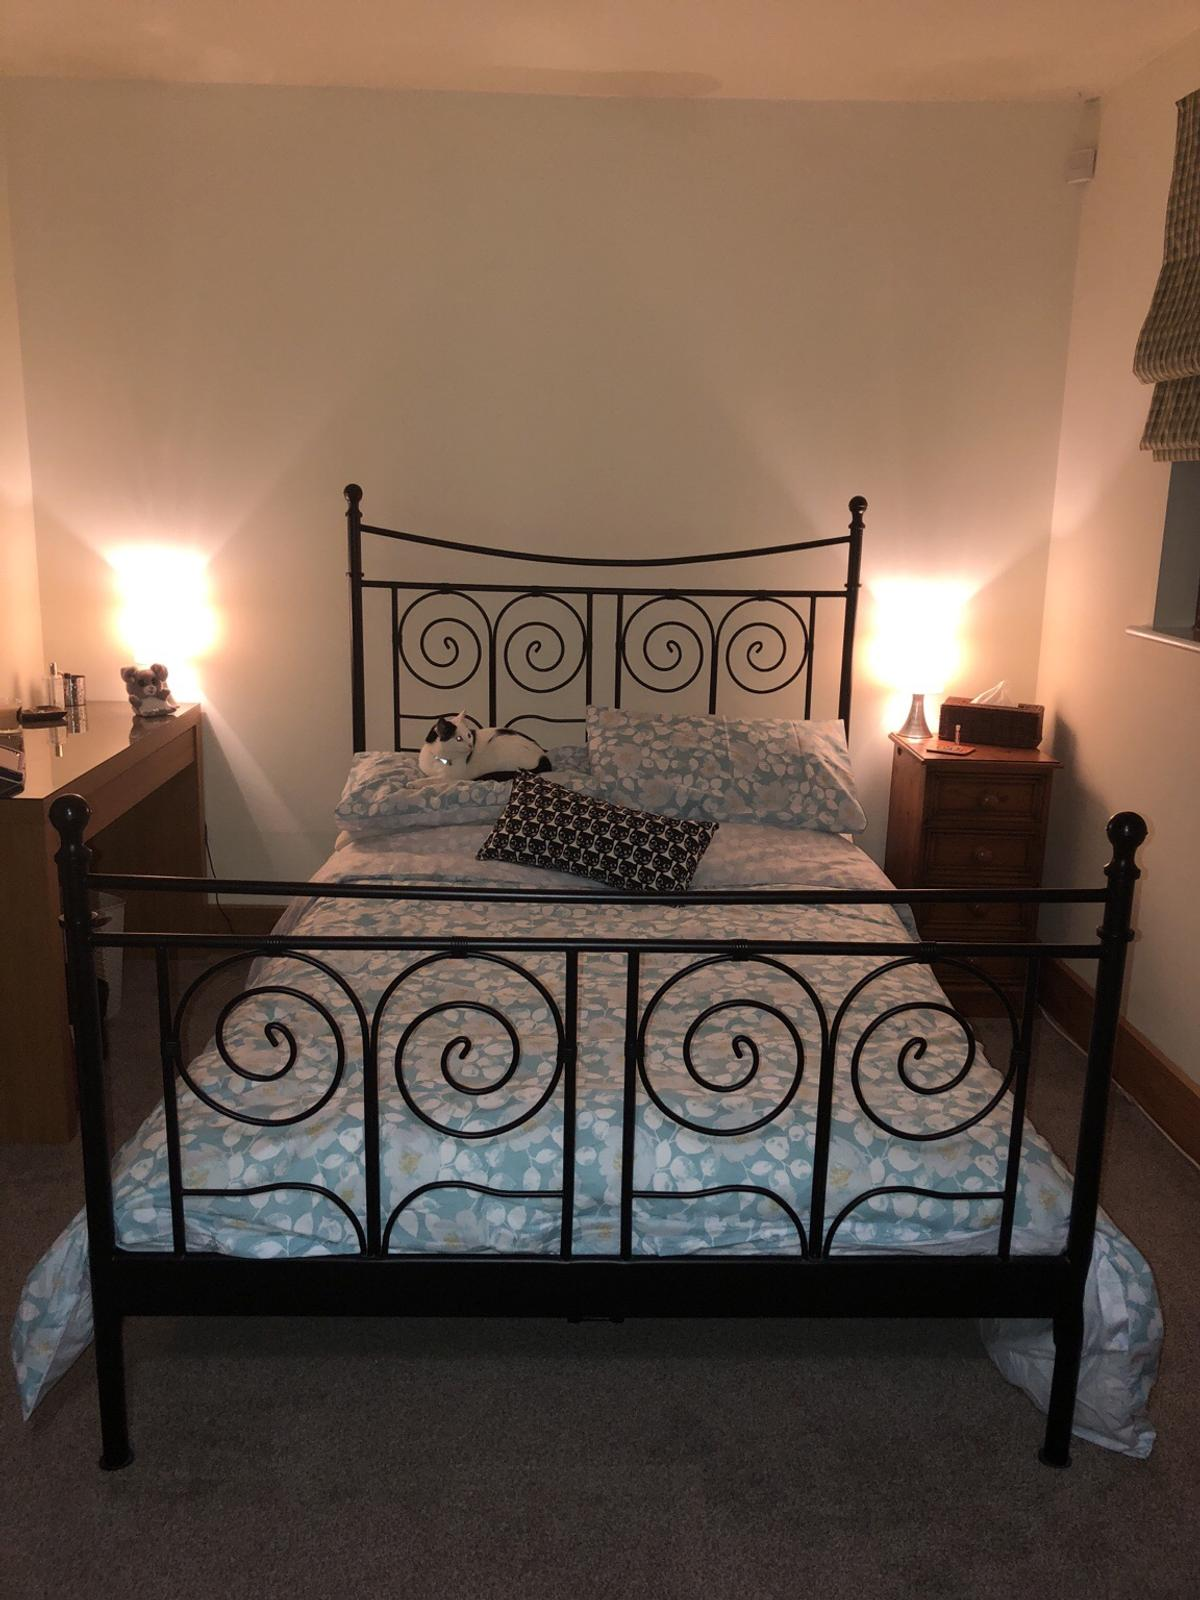 Ikea Ornate Metal Bed Frame Double In